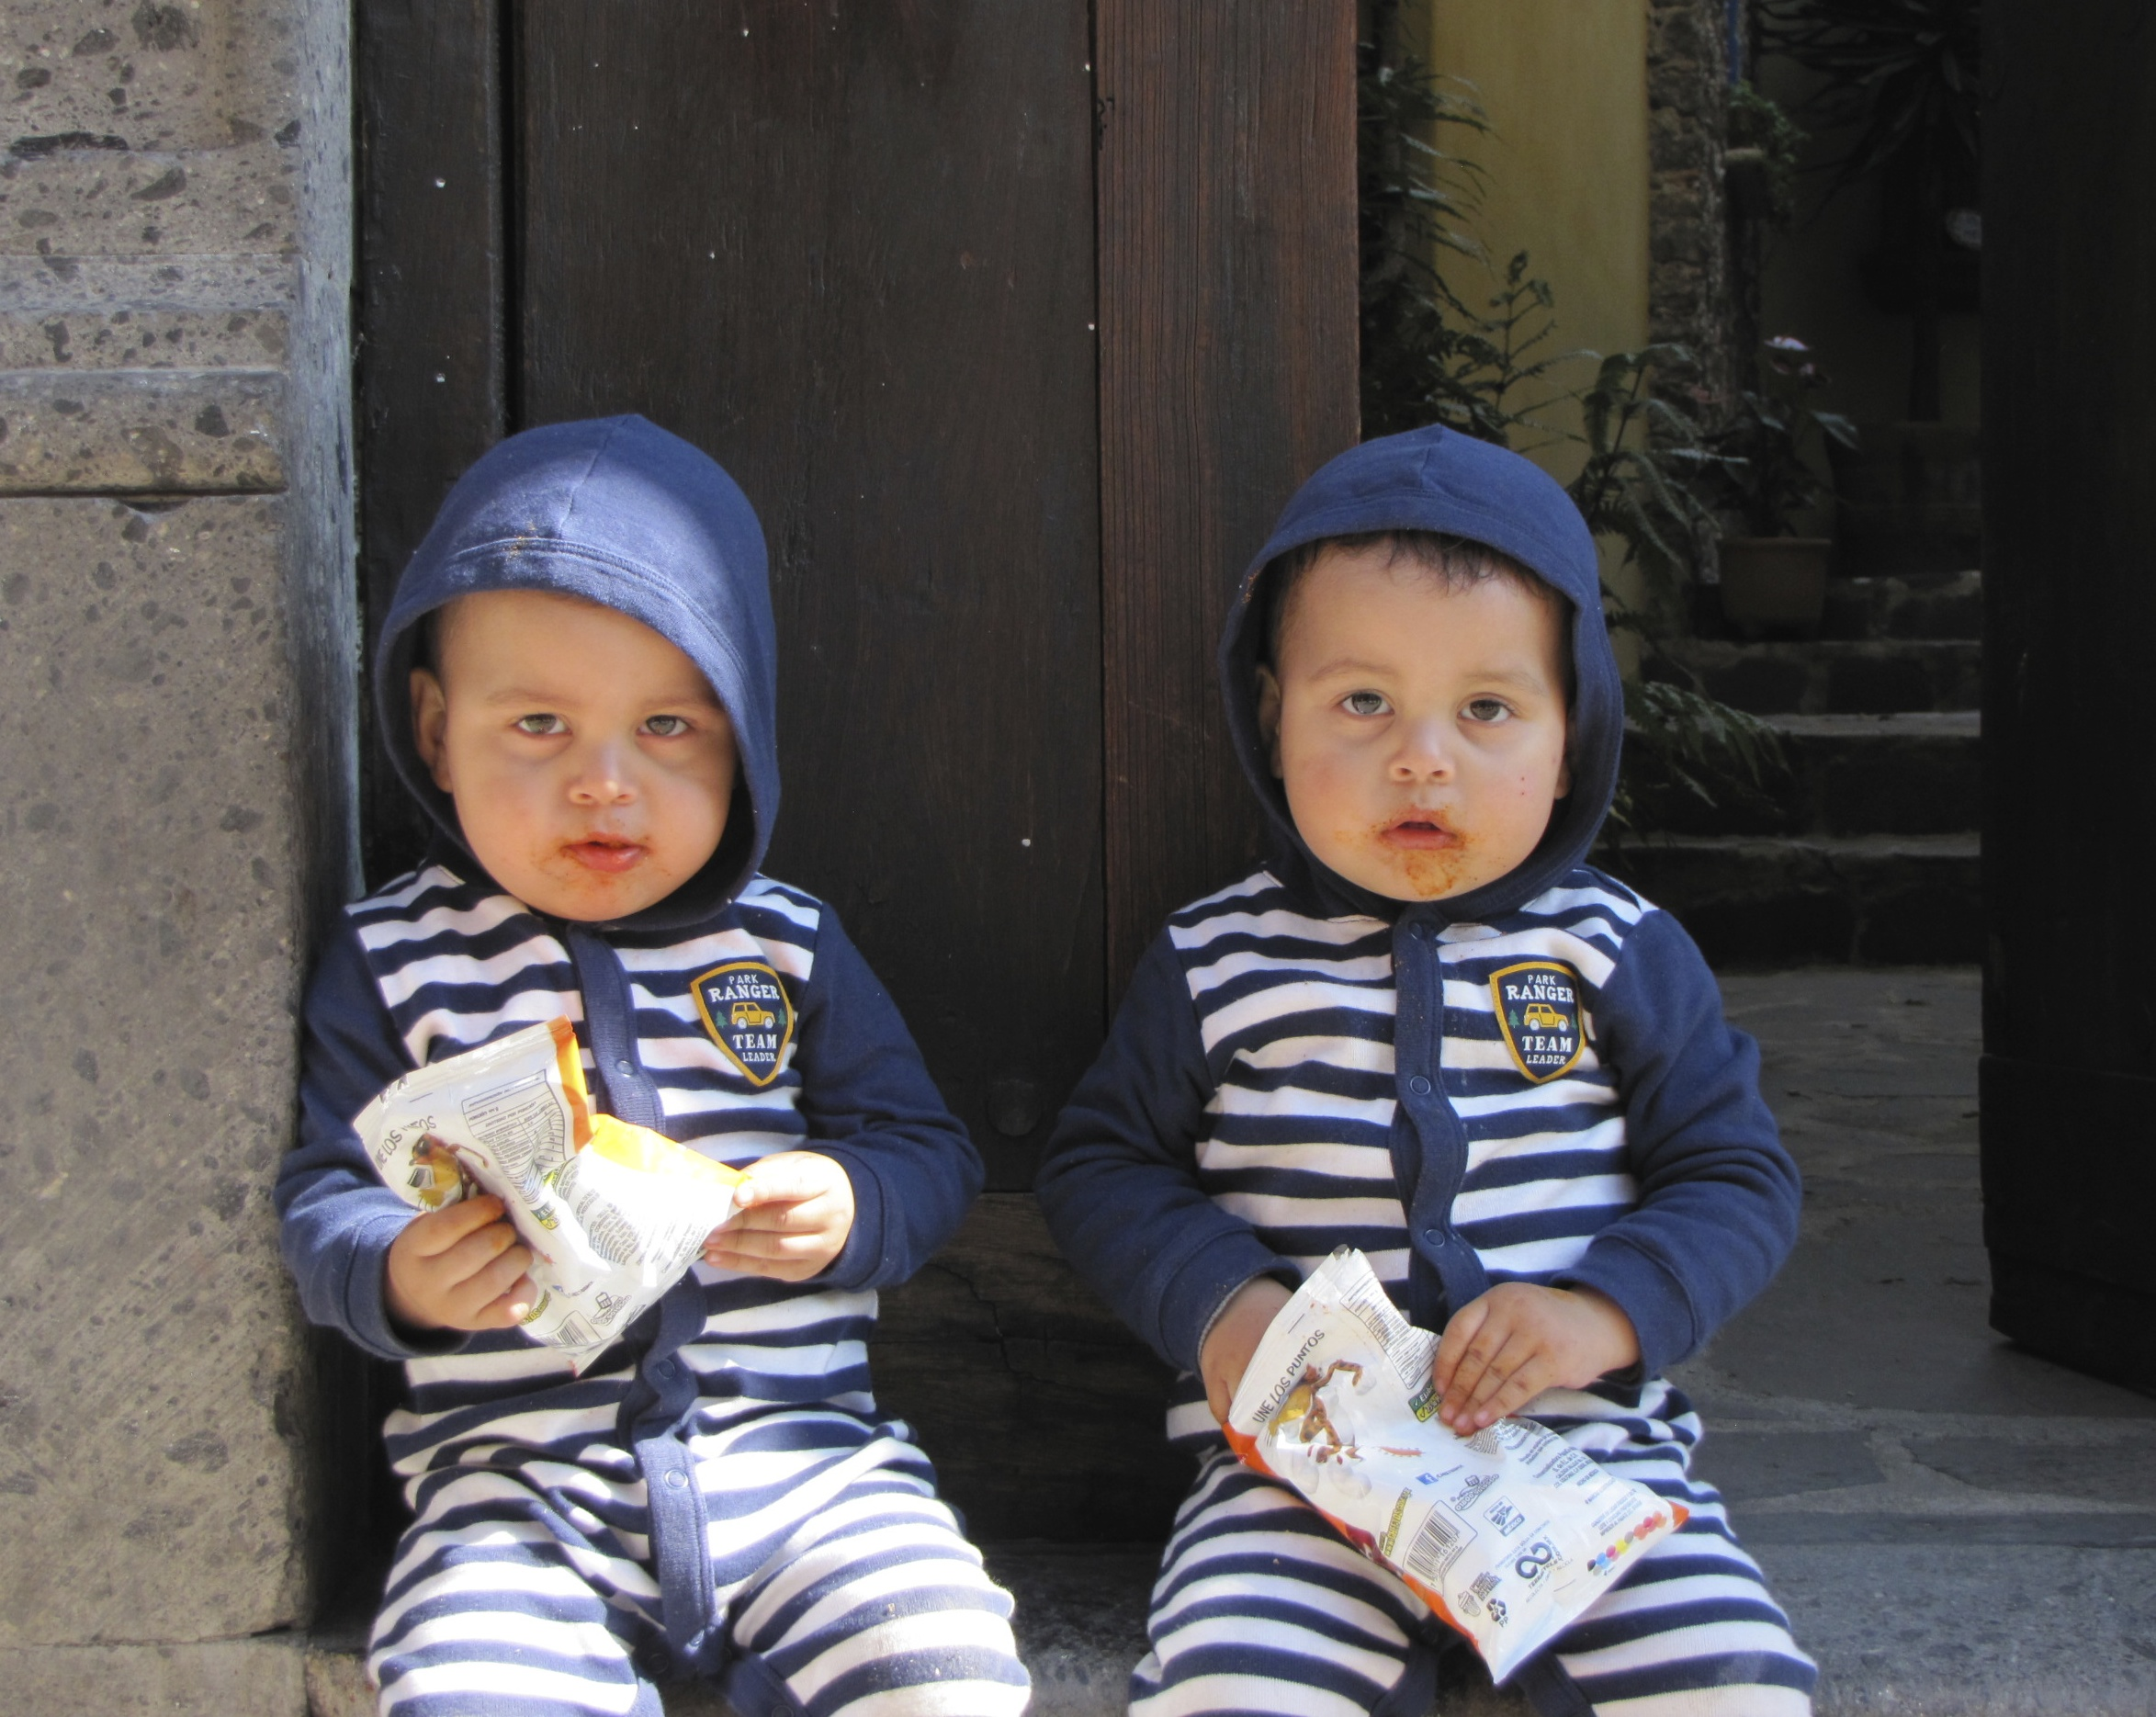 Twins outside our door! So cute even though the chips were, well....JPG